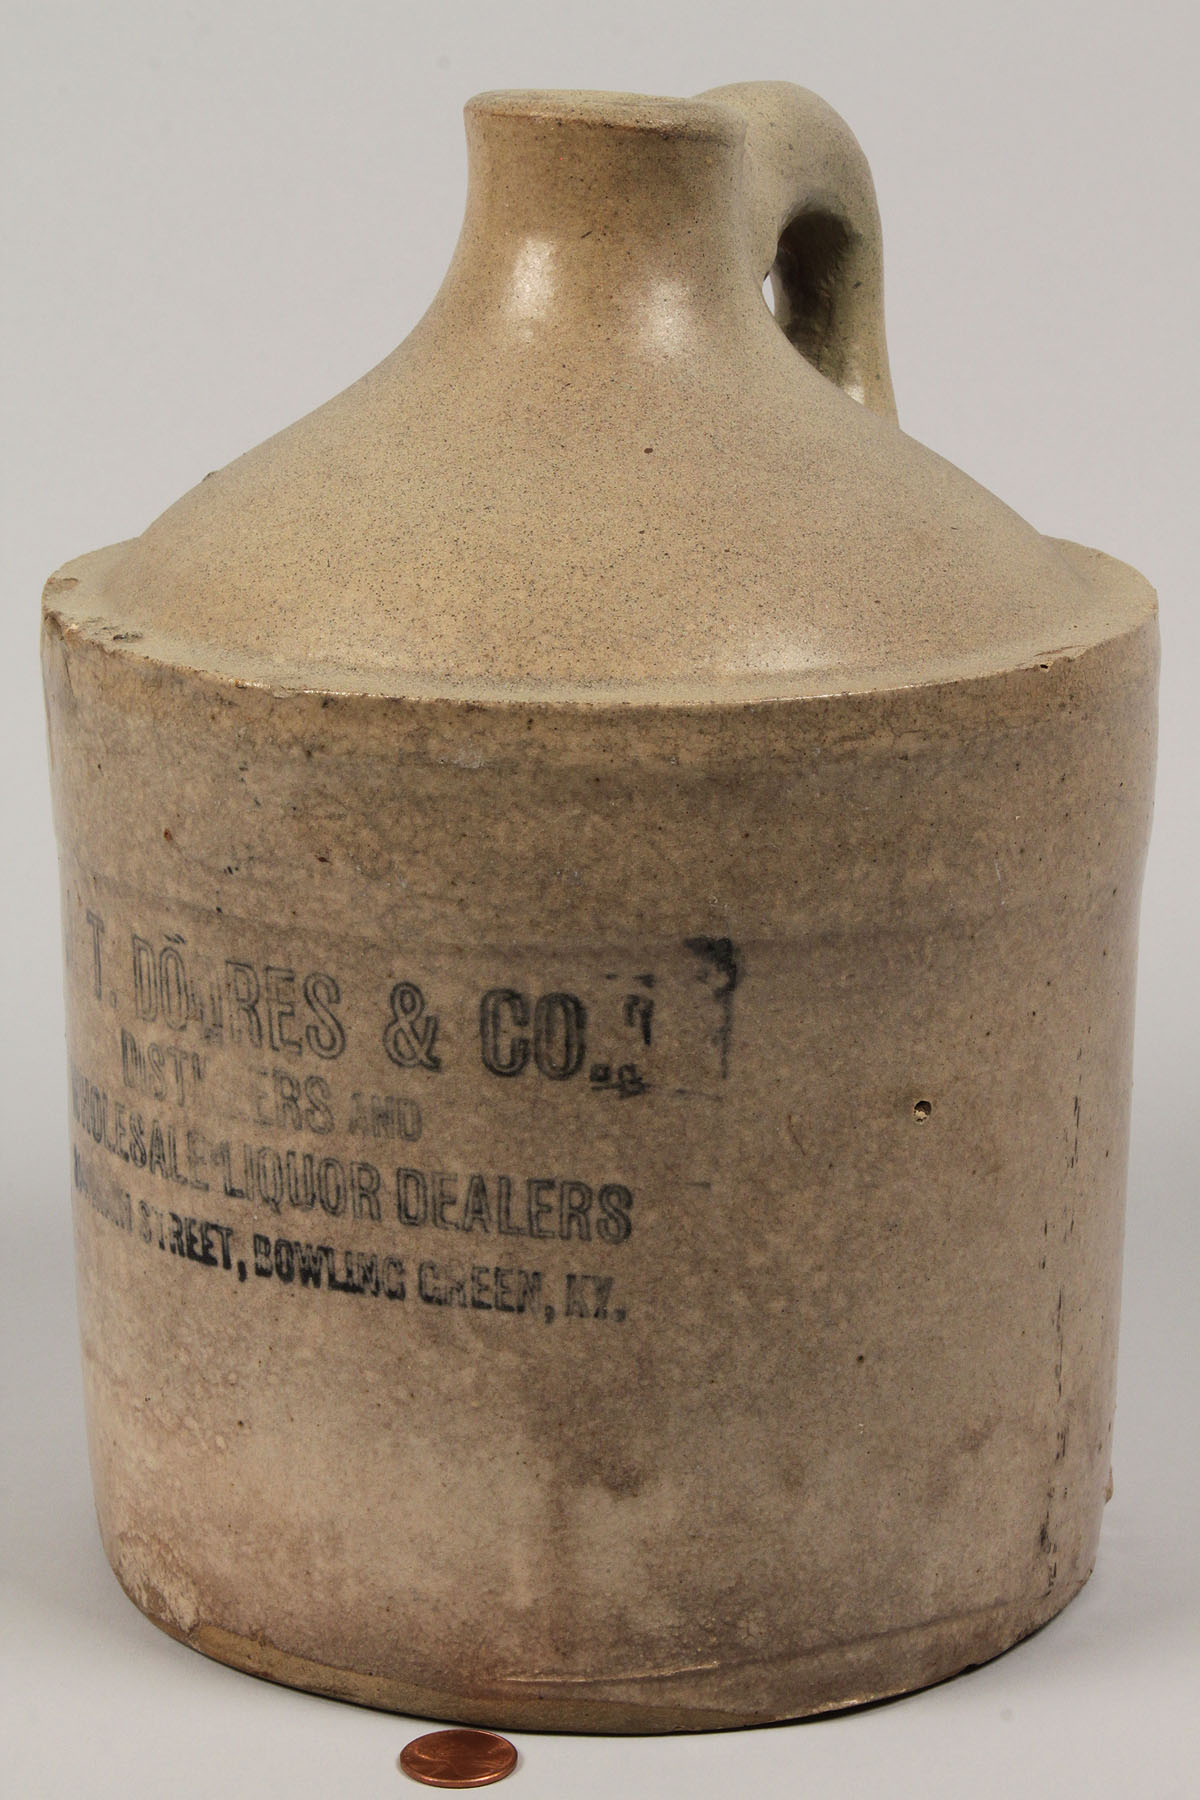 Auctions In Alabama >> Lot 298: Kentucky Whiskey Jug, J T Doores & Co.